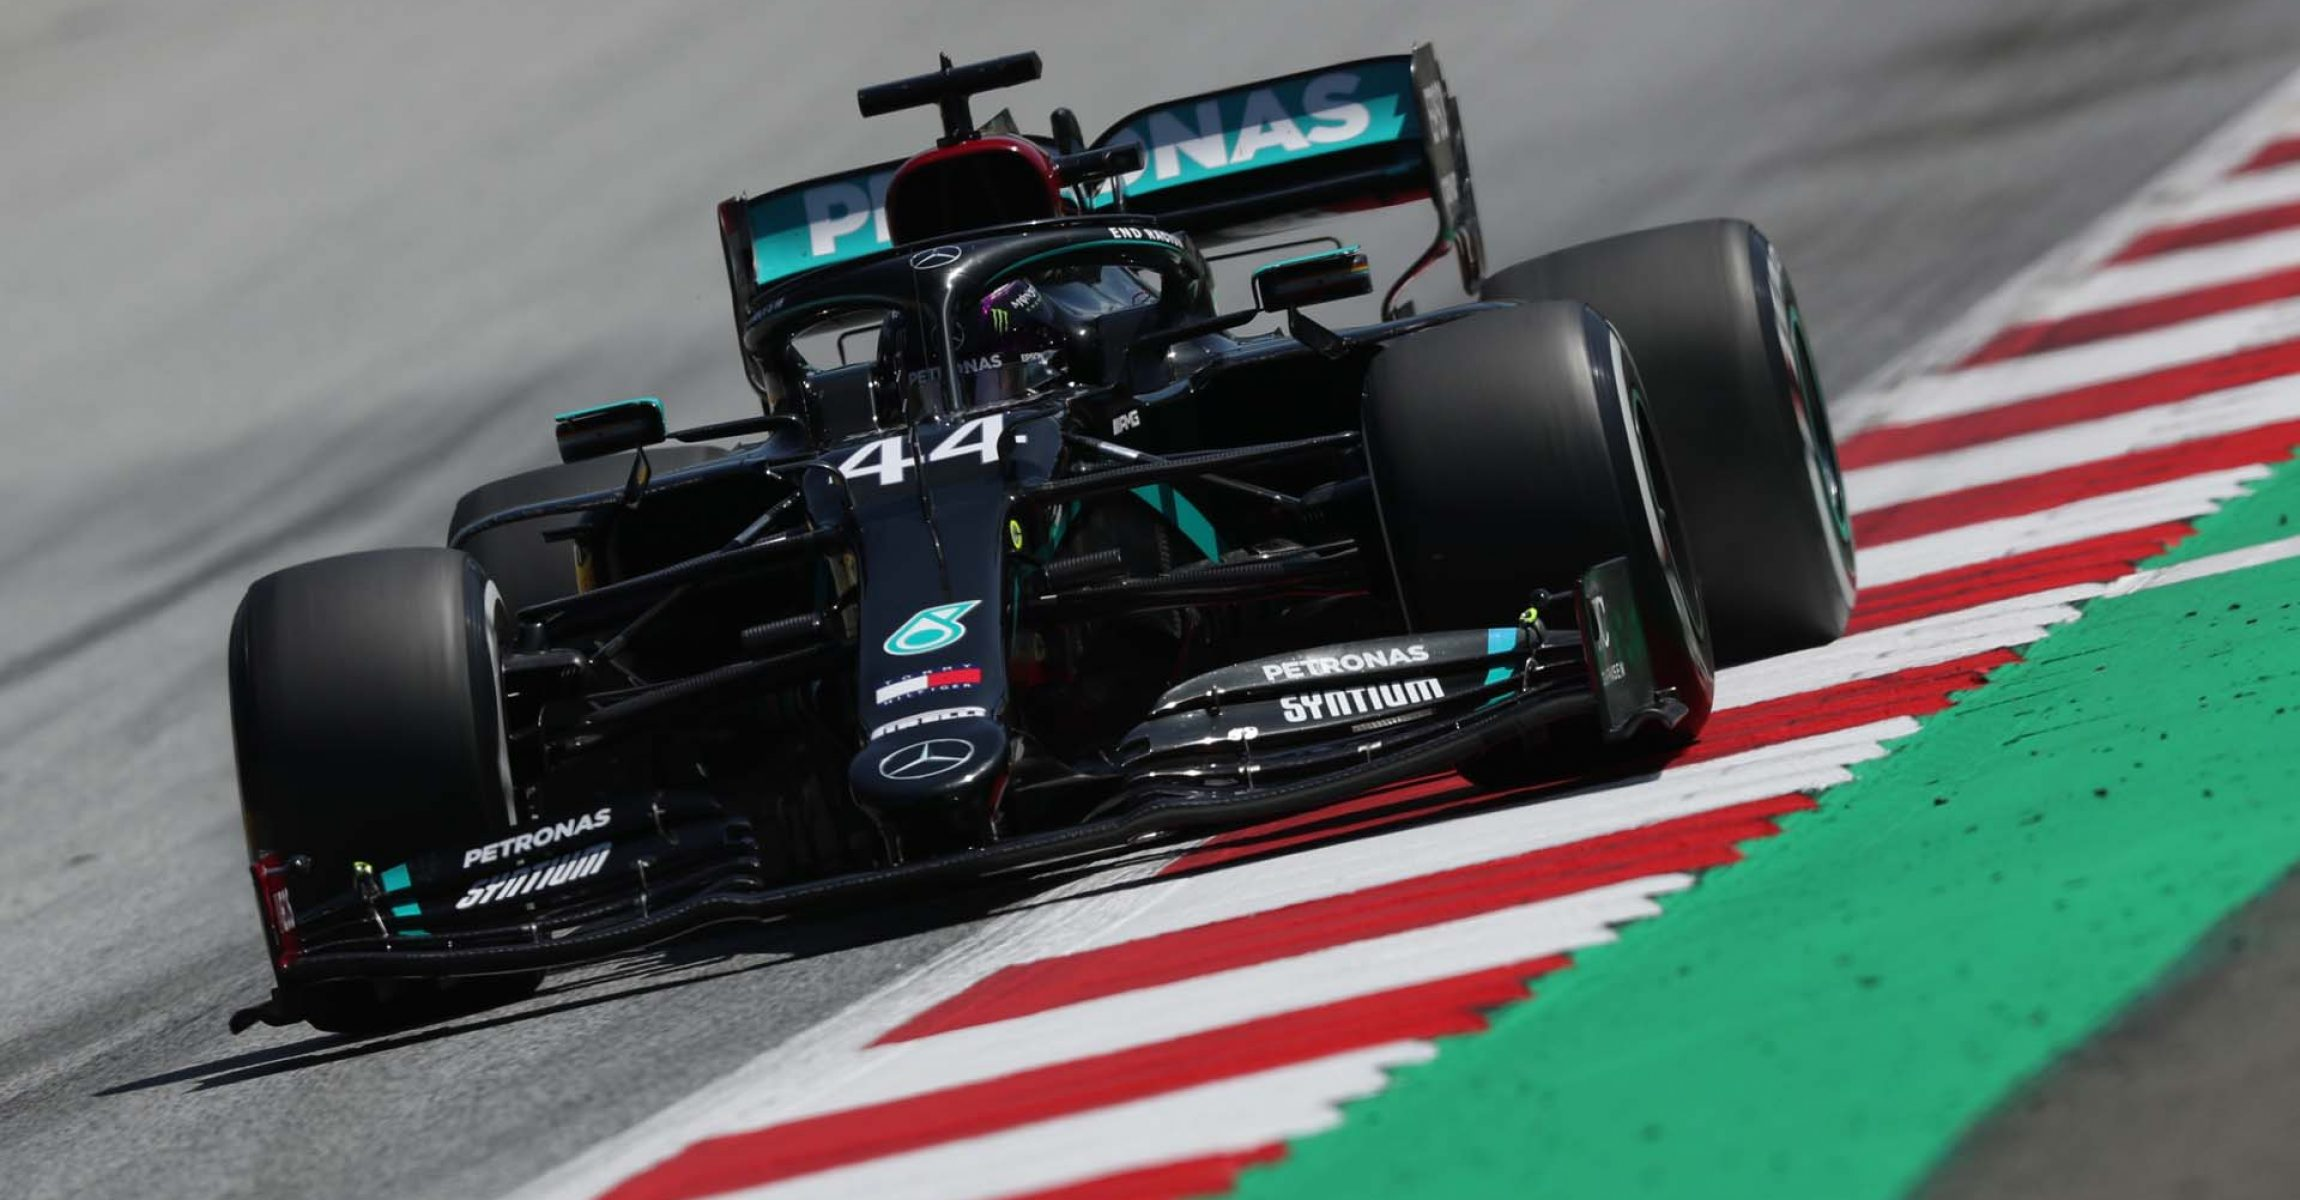 2020 Styrian Grand Prix, Friday - LAT Images Lewis Hamilton Mercedes